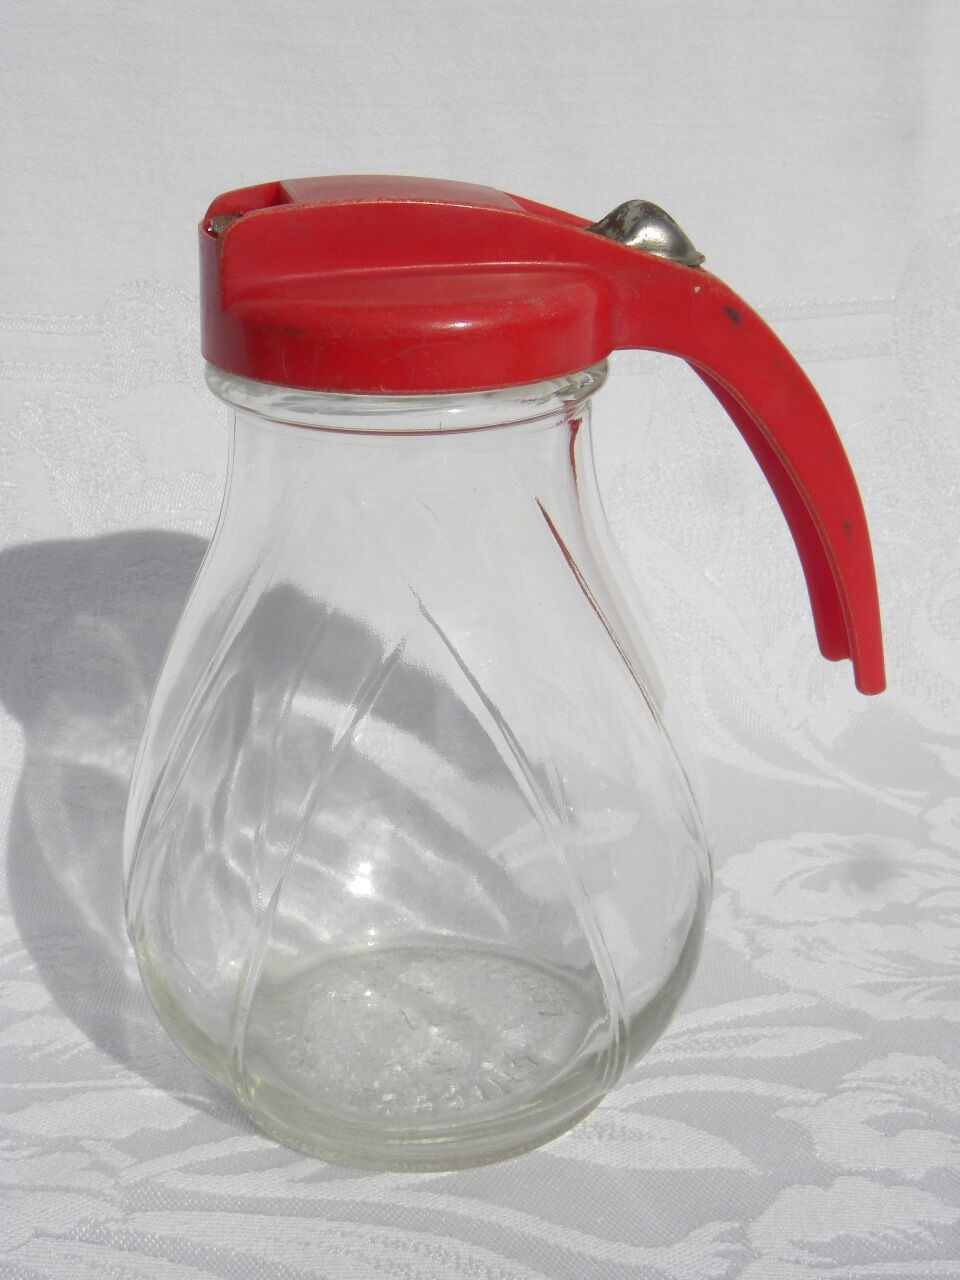 Vintage Hazel Atlas Federal Tool Corp. Glass Syrup Pitcher w/Red Plastic Lid - $7.99